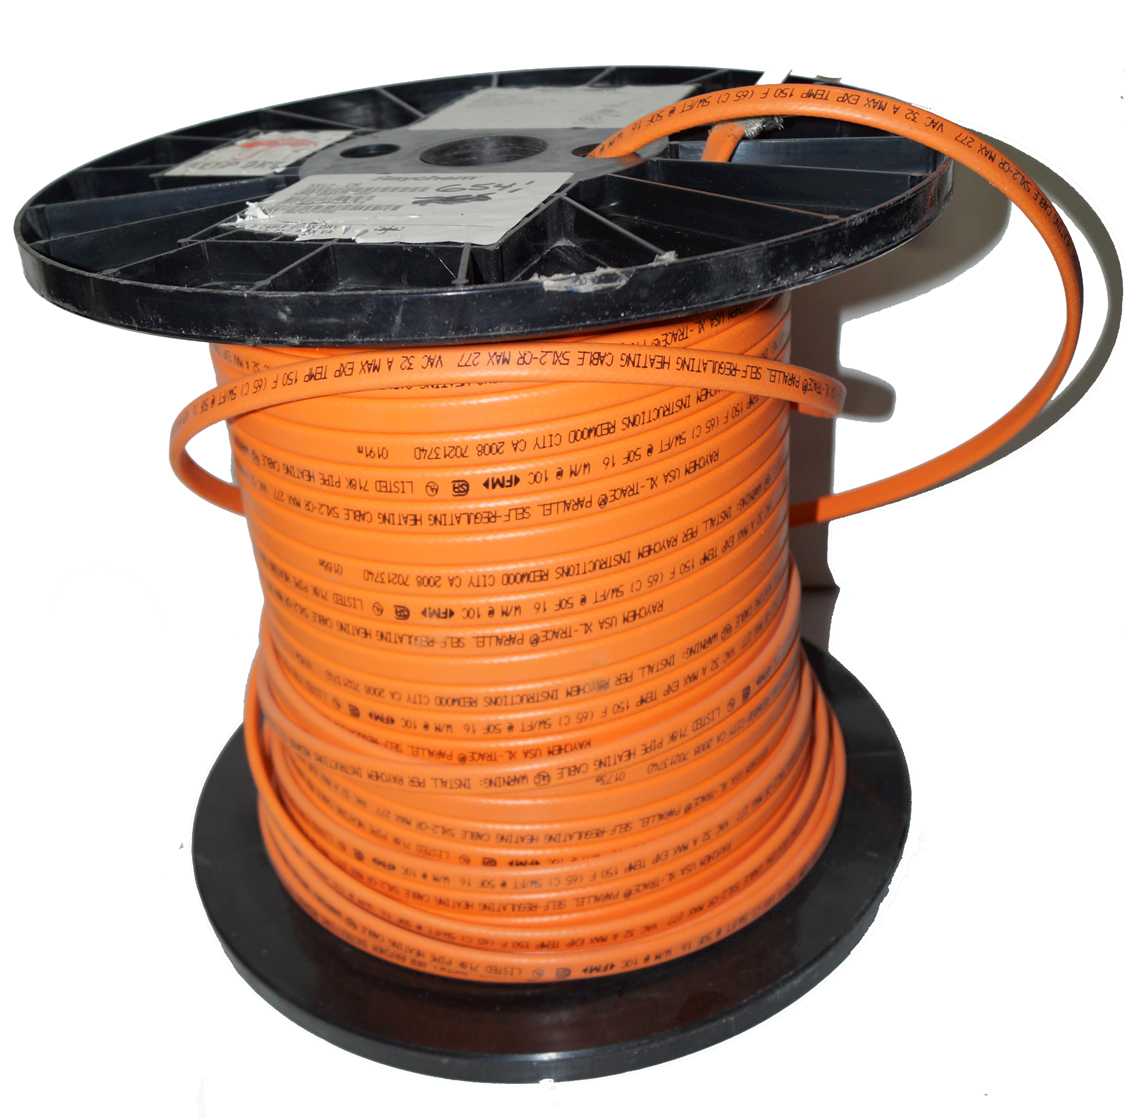 Raychem Heat Trace Cable : Raychem pipe heating cable xl cr